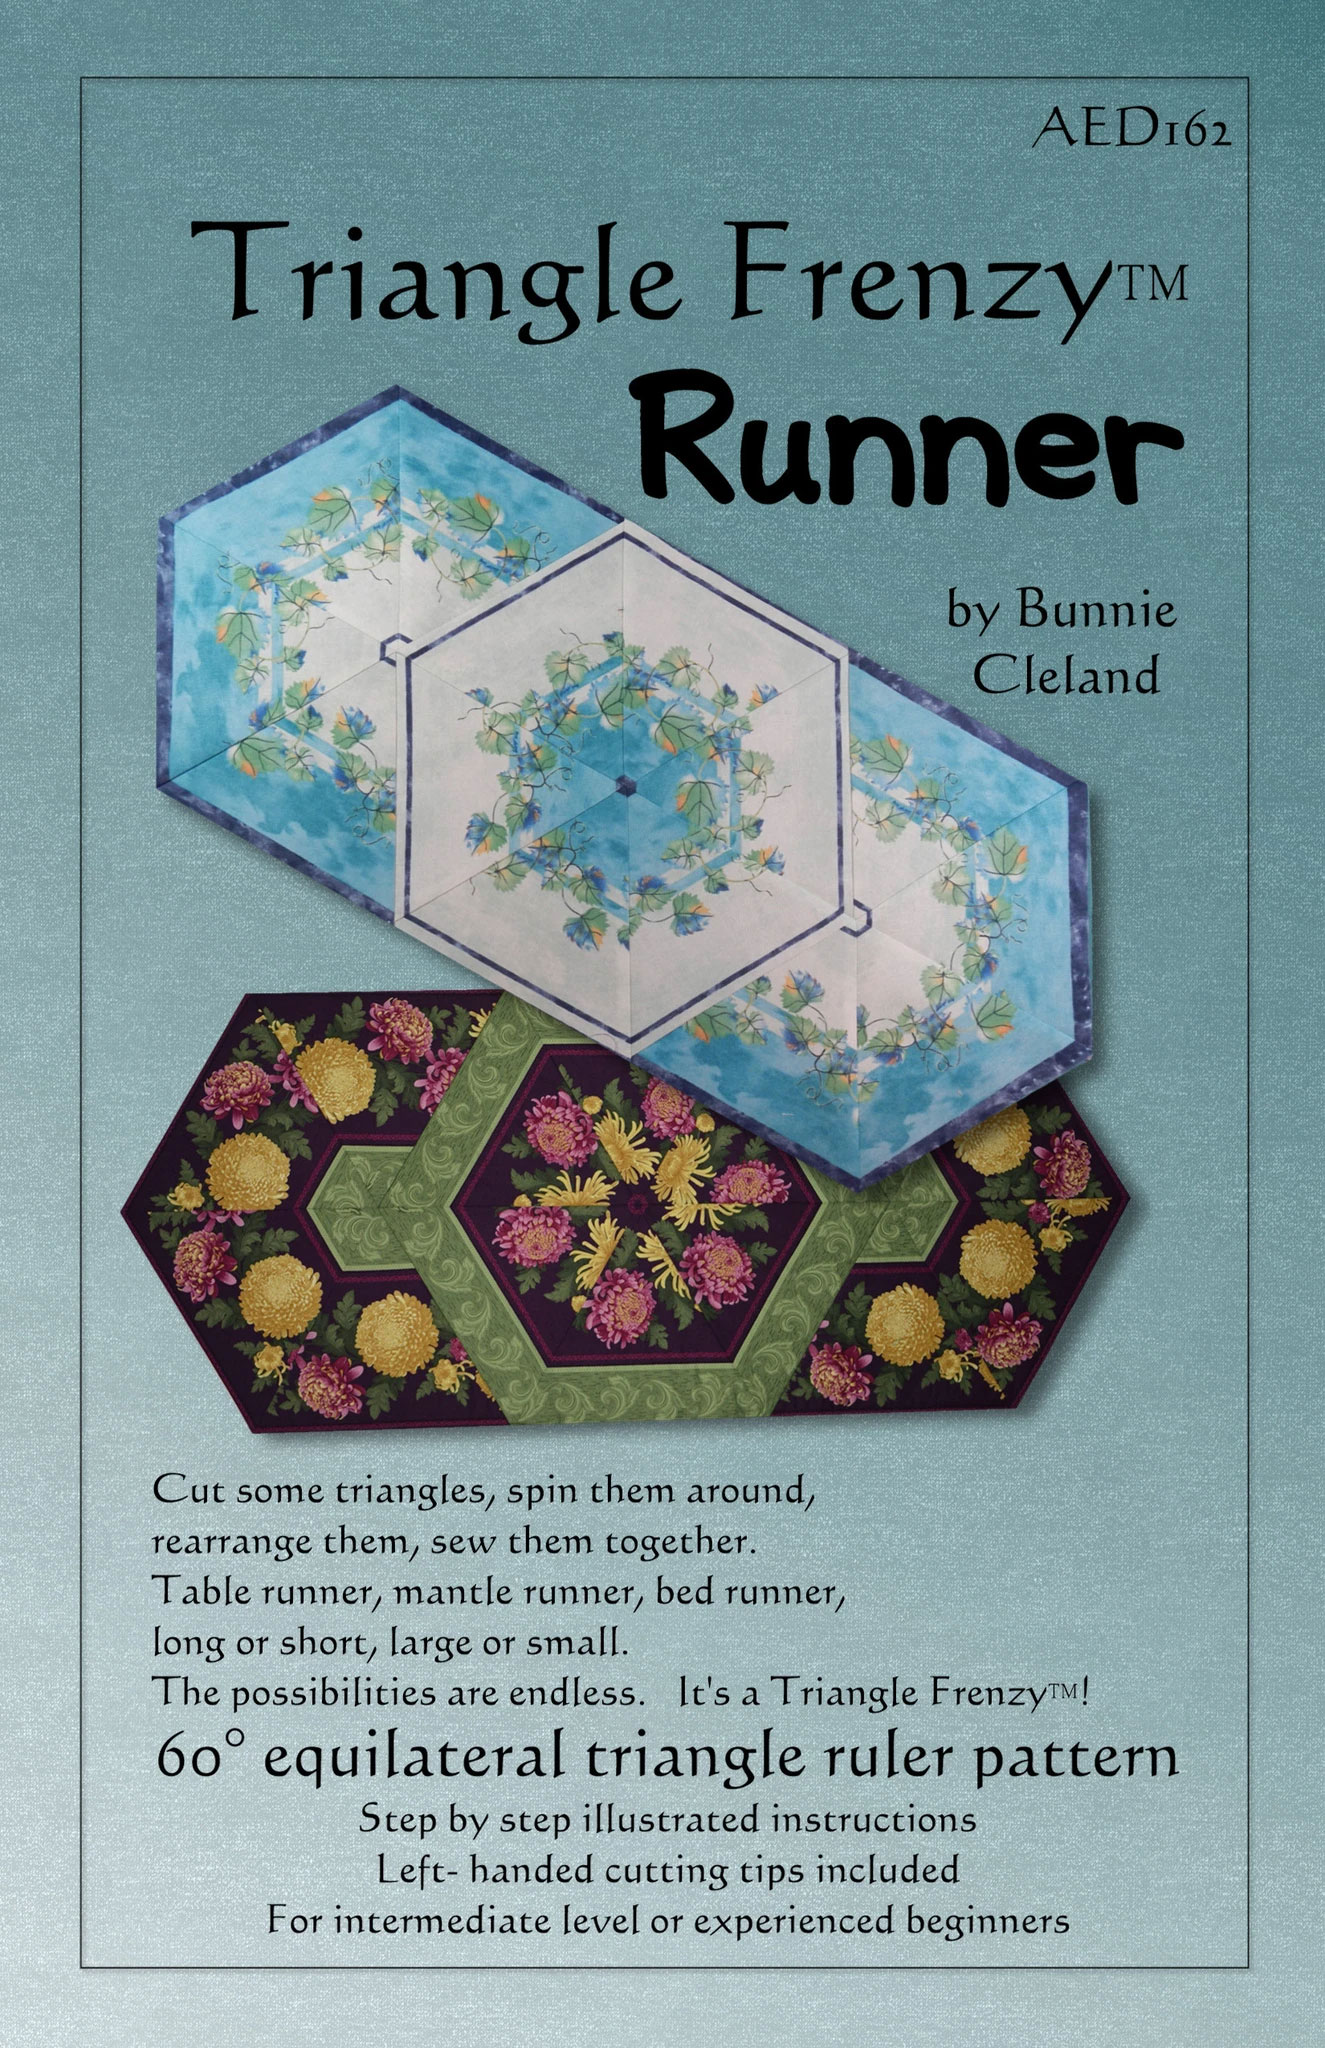 Triangle-Frenzy-Runner-sewing-pattern-Bunny-Cleland-front.jpg